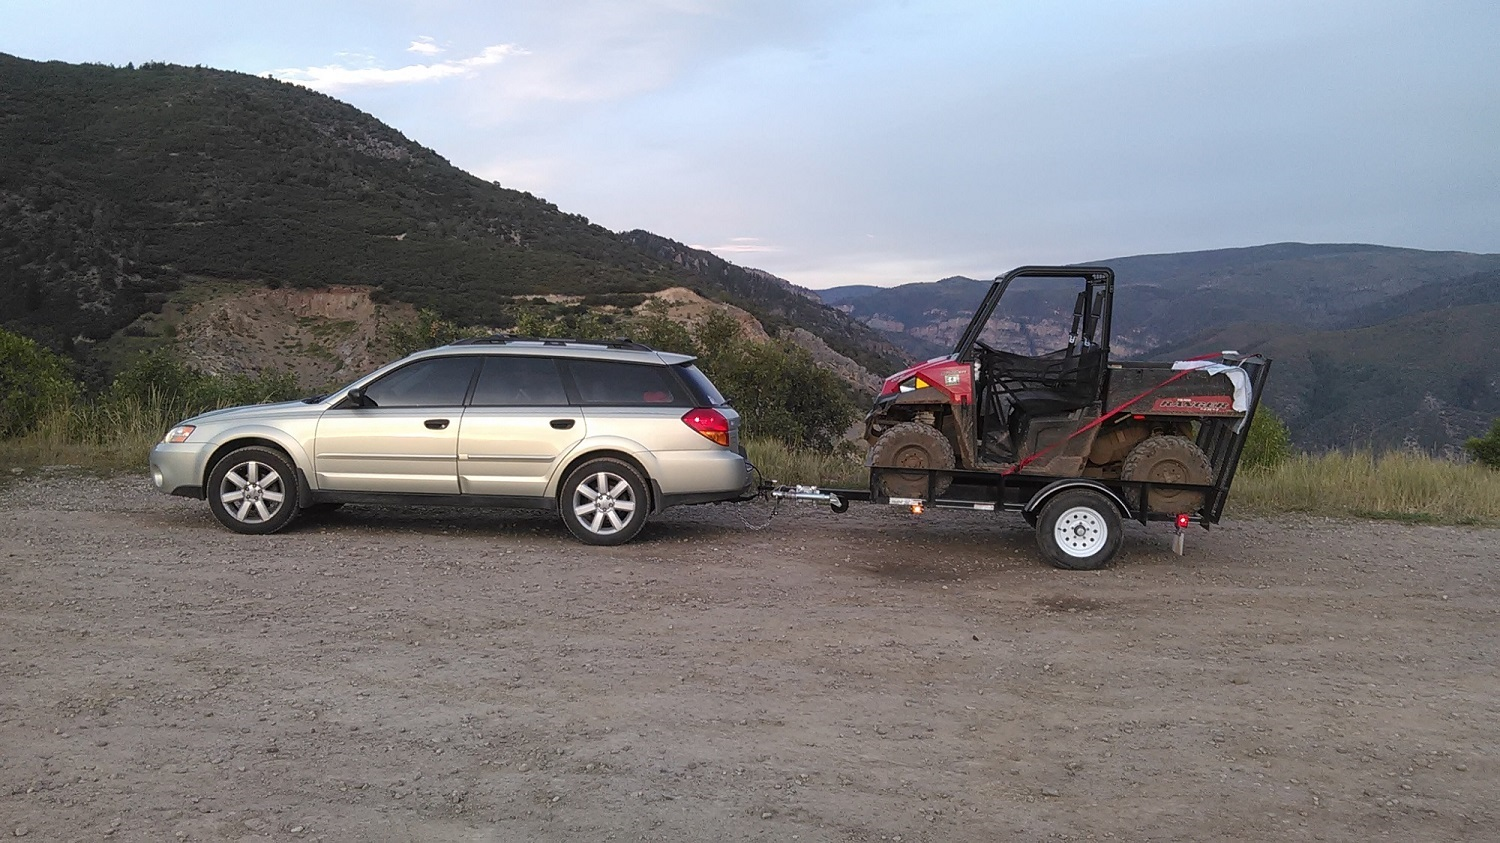 10 Things You Need To Know About The 2015 Subaru Outback ... |Small Subaru Outback